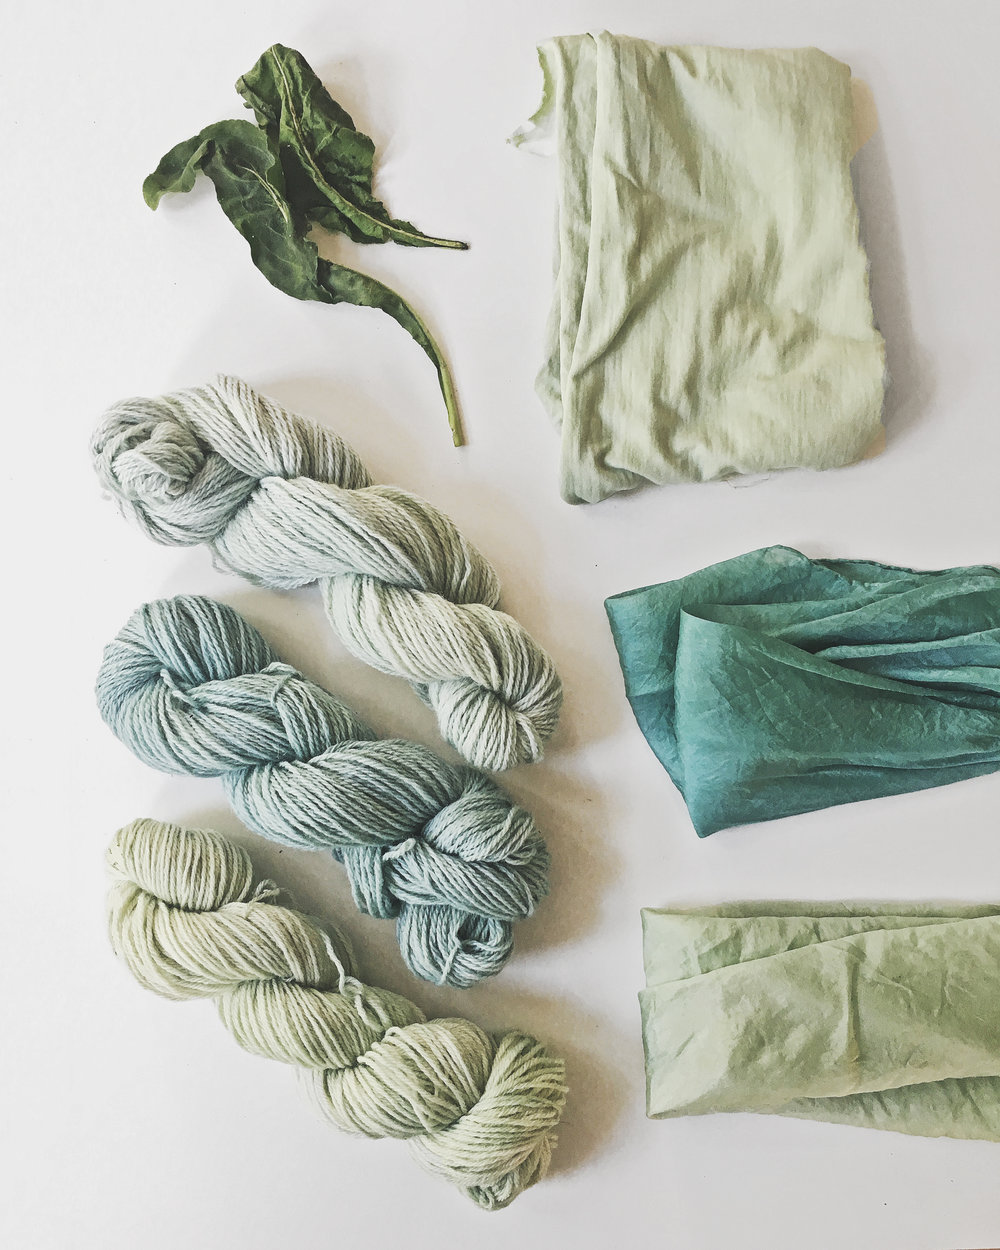 You don't have to make a indigo vat to dye blue. Learn how to use fresh woad or indigo leaves and dye wool or silk without a long and complicated reduction process.